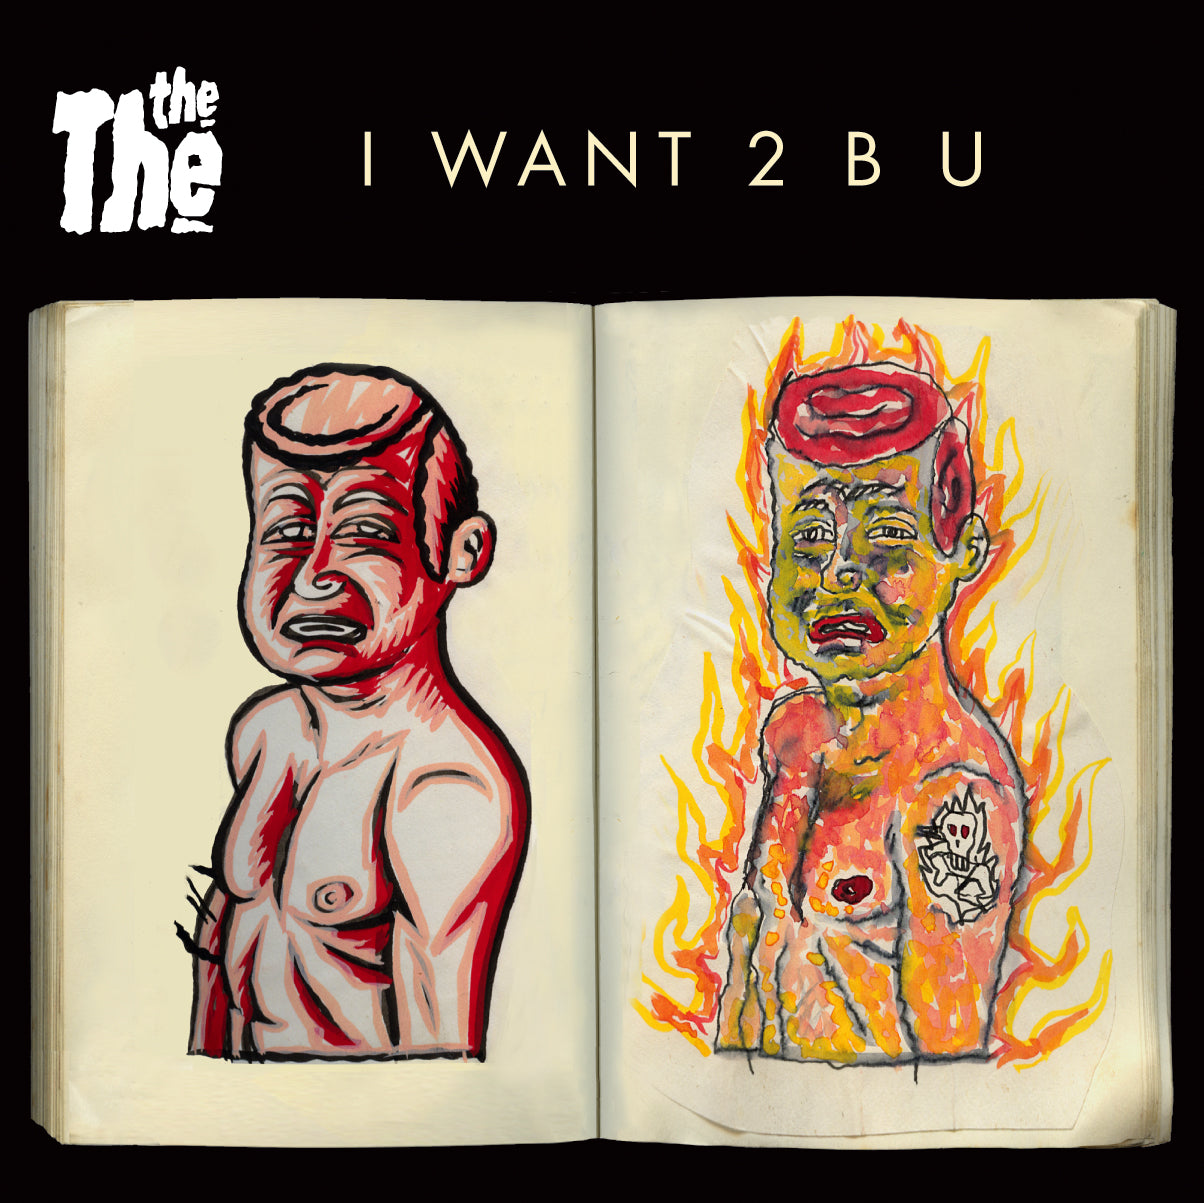 "The The - I WANT 2 B U (RSD 2020 Drop One) 7"" Vinyl Record"